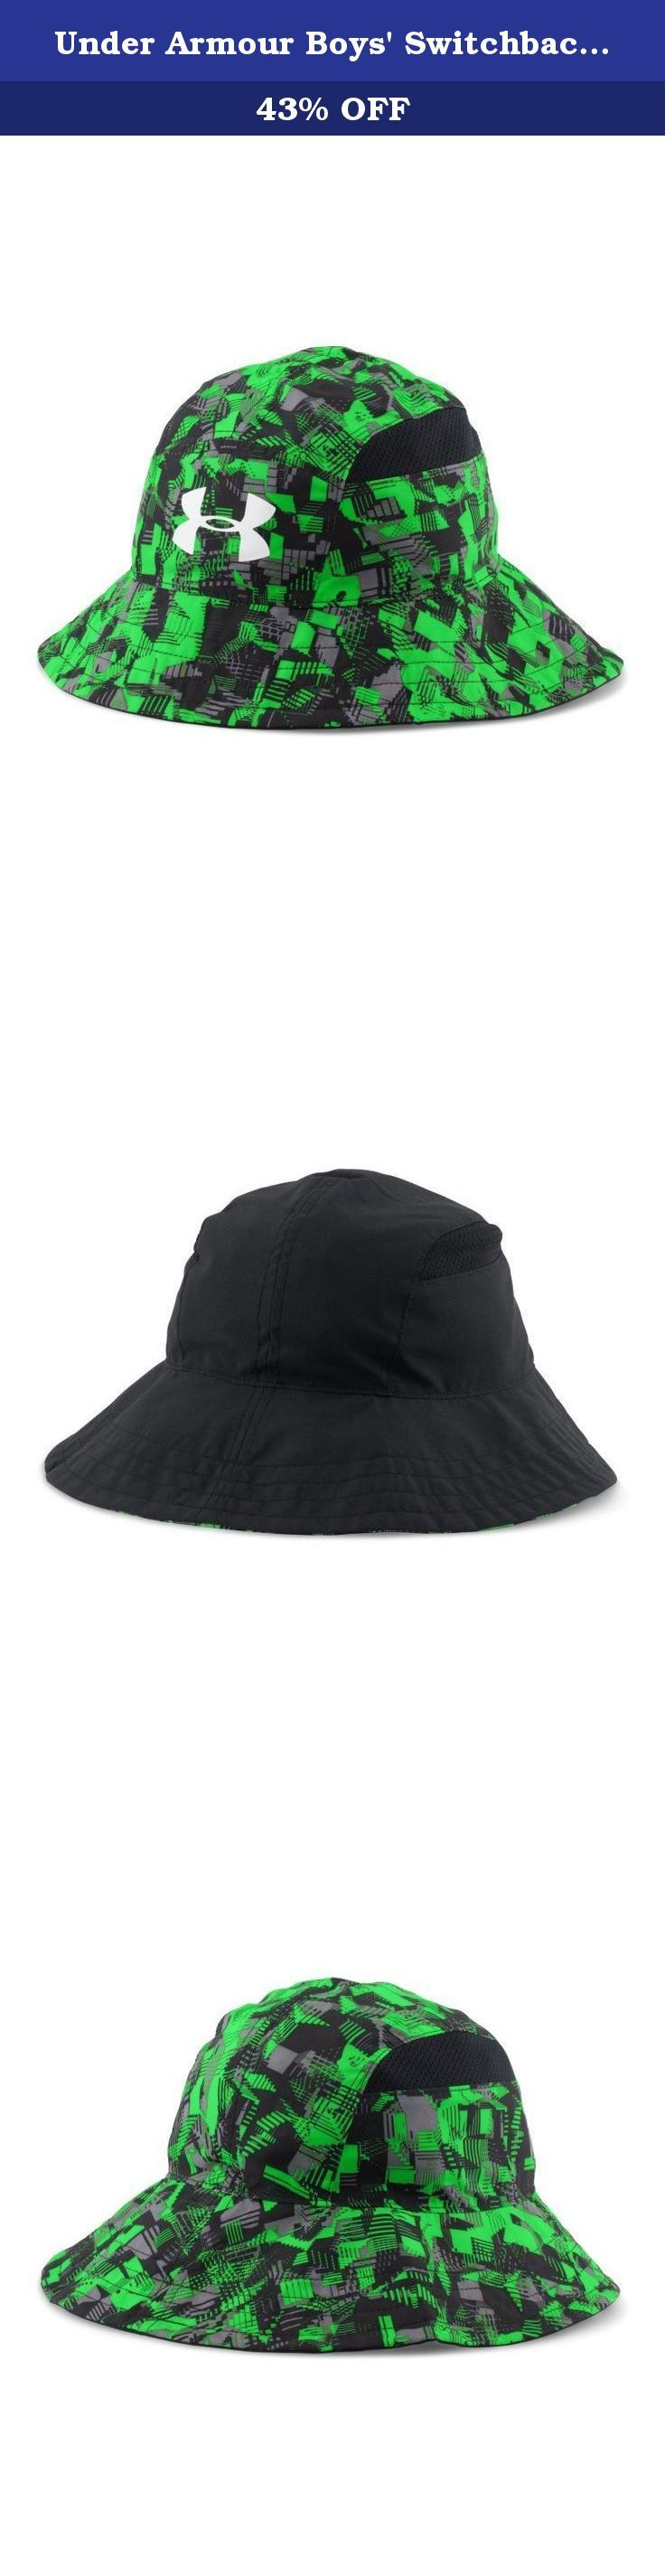 Under Armour Boys' Switchback Bucket Hat, Black (003), One Size. Reversible 2-in-1 design with a traditional bucket fit. Pieced-in mesh for ventilation.